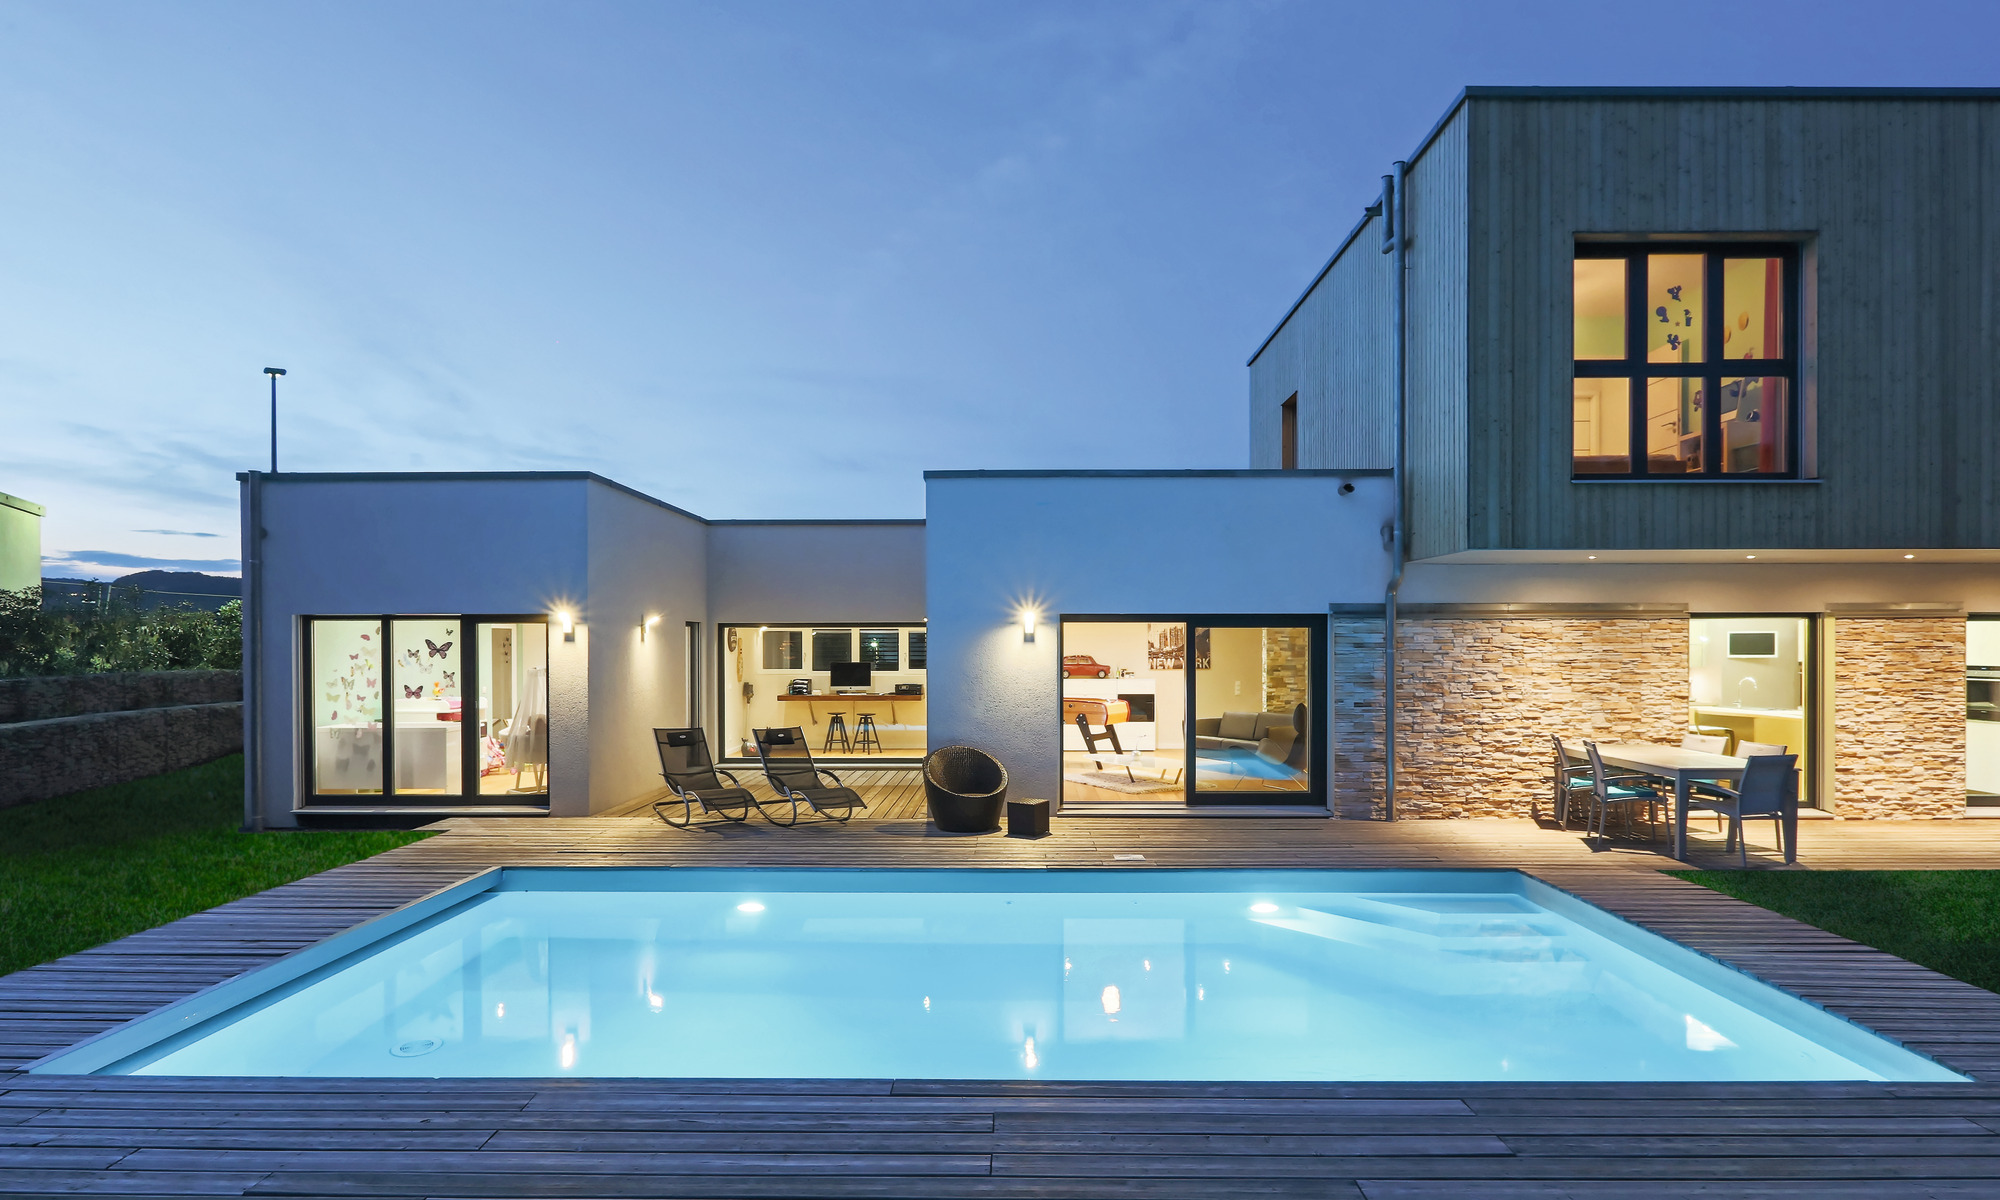 Architect-designed prefab home with large pool